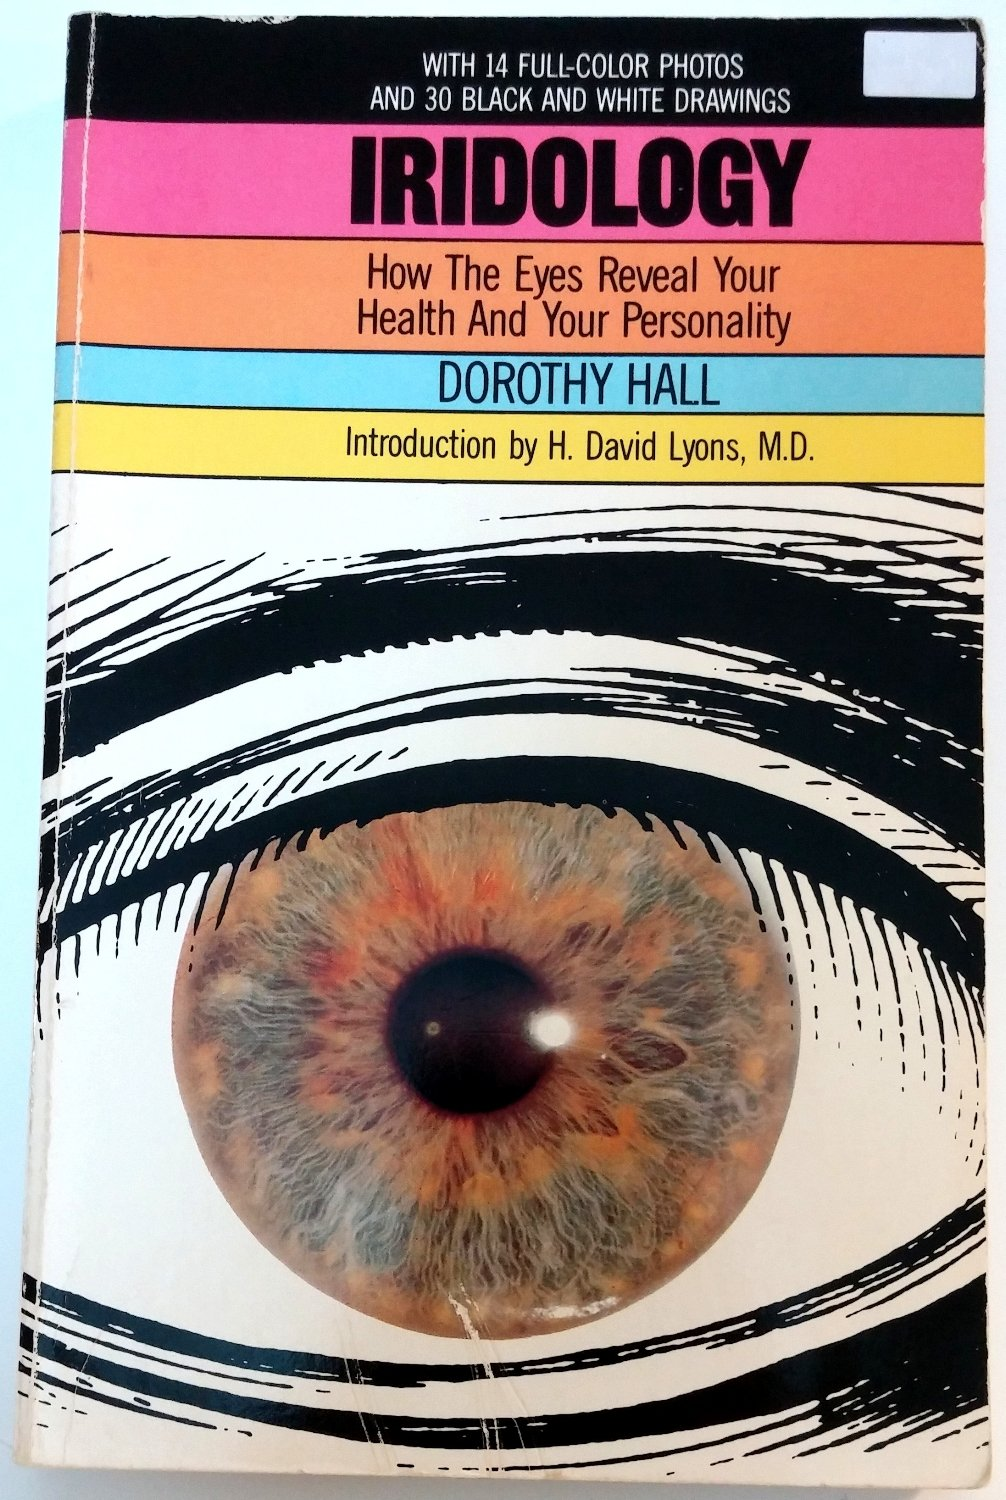 Iridology how the eyes reveal your health and personality iridology how the eyes reveal your health and personality dorothy hall 9780879832414 books amazon geenschuldenfo Gallery